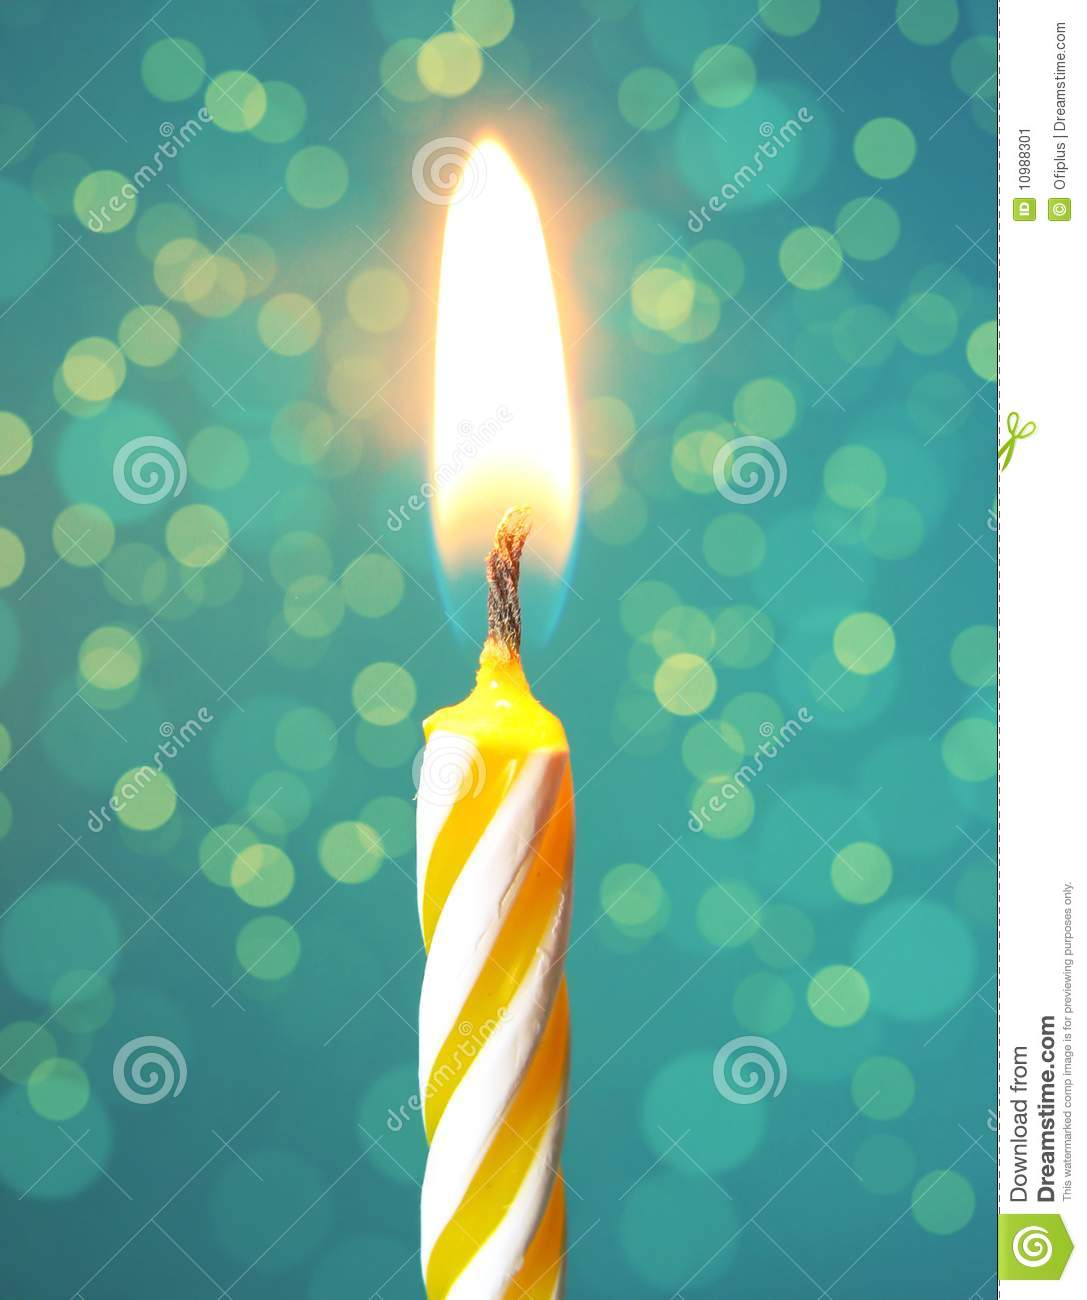 Happy Birthday Candle Stock Image - Image: 10988301